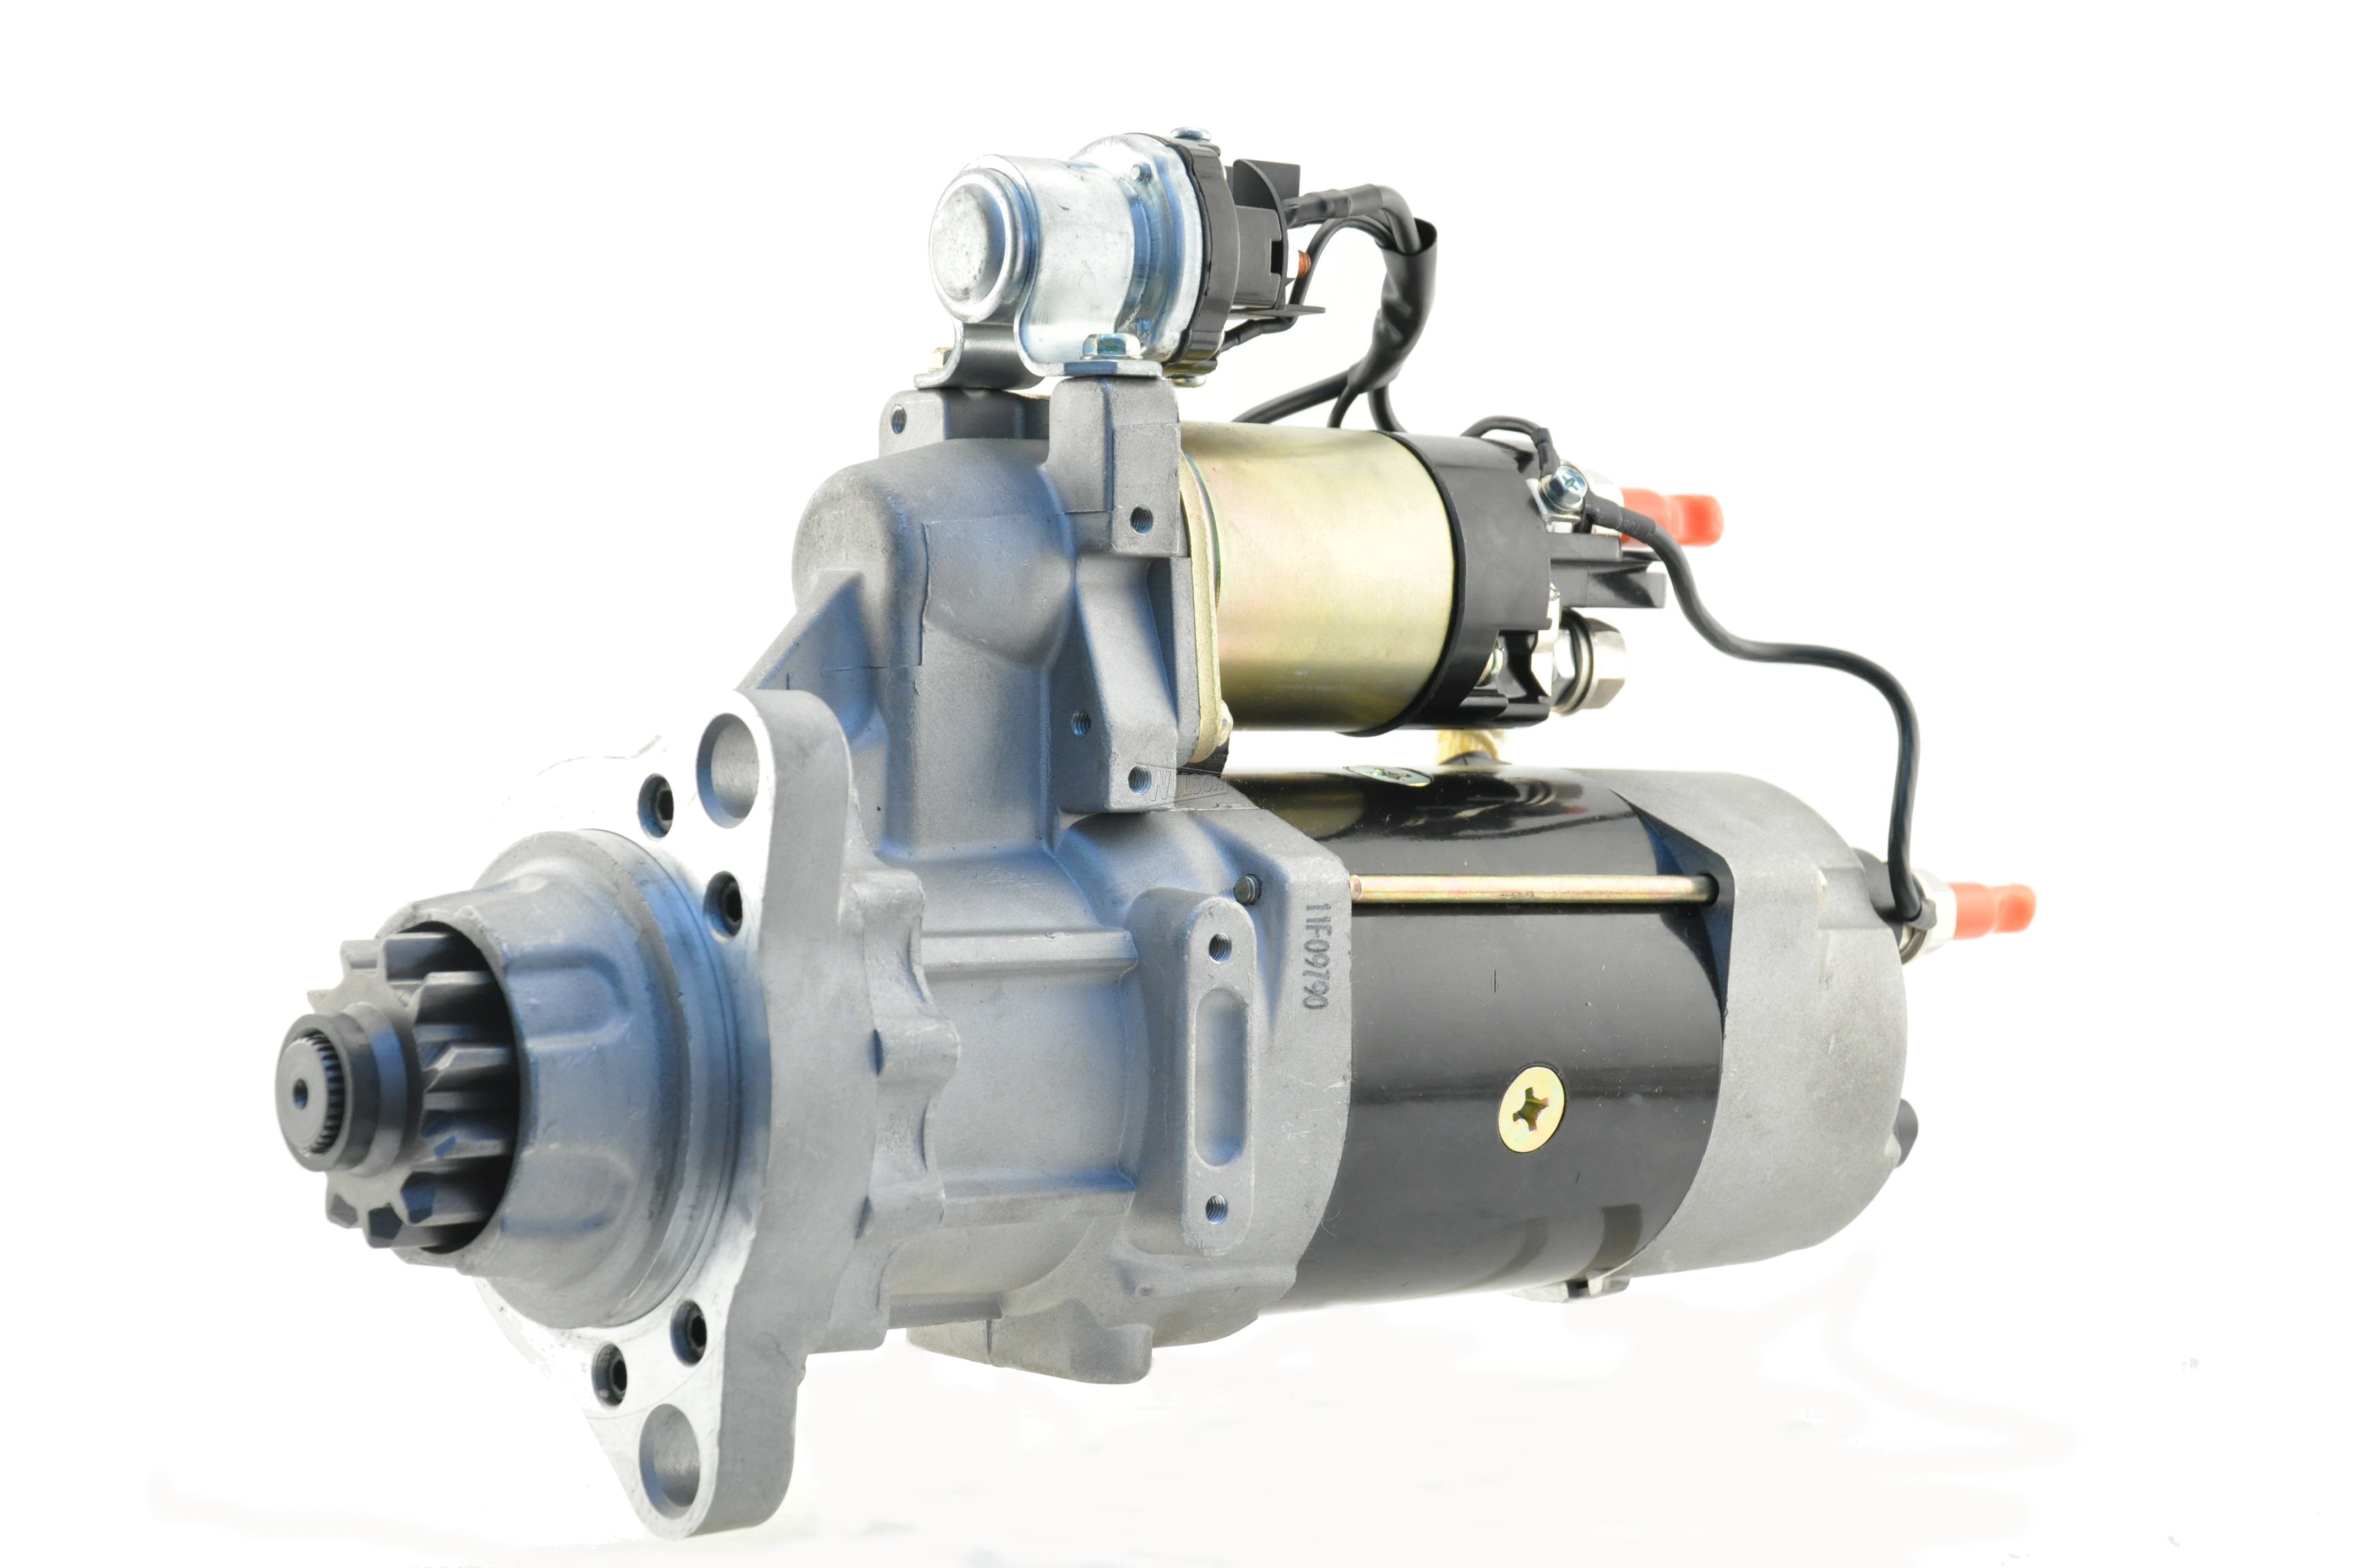 Thumbnail Asp File Http Www Wilsonautoelectric Partimages 91 Starter Motors 01 4759n Jpg Ma 500 Maxy 0